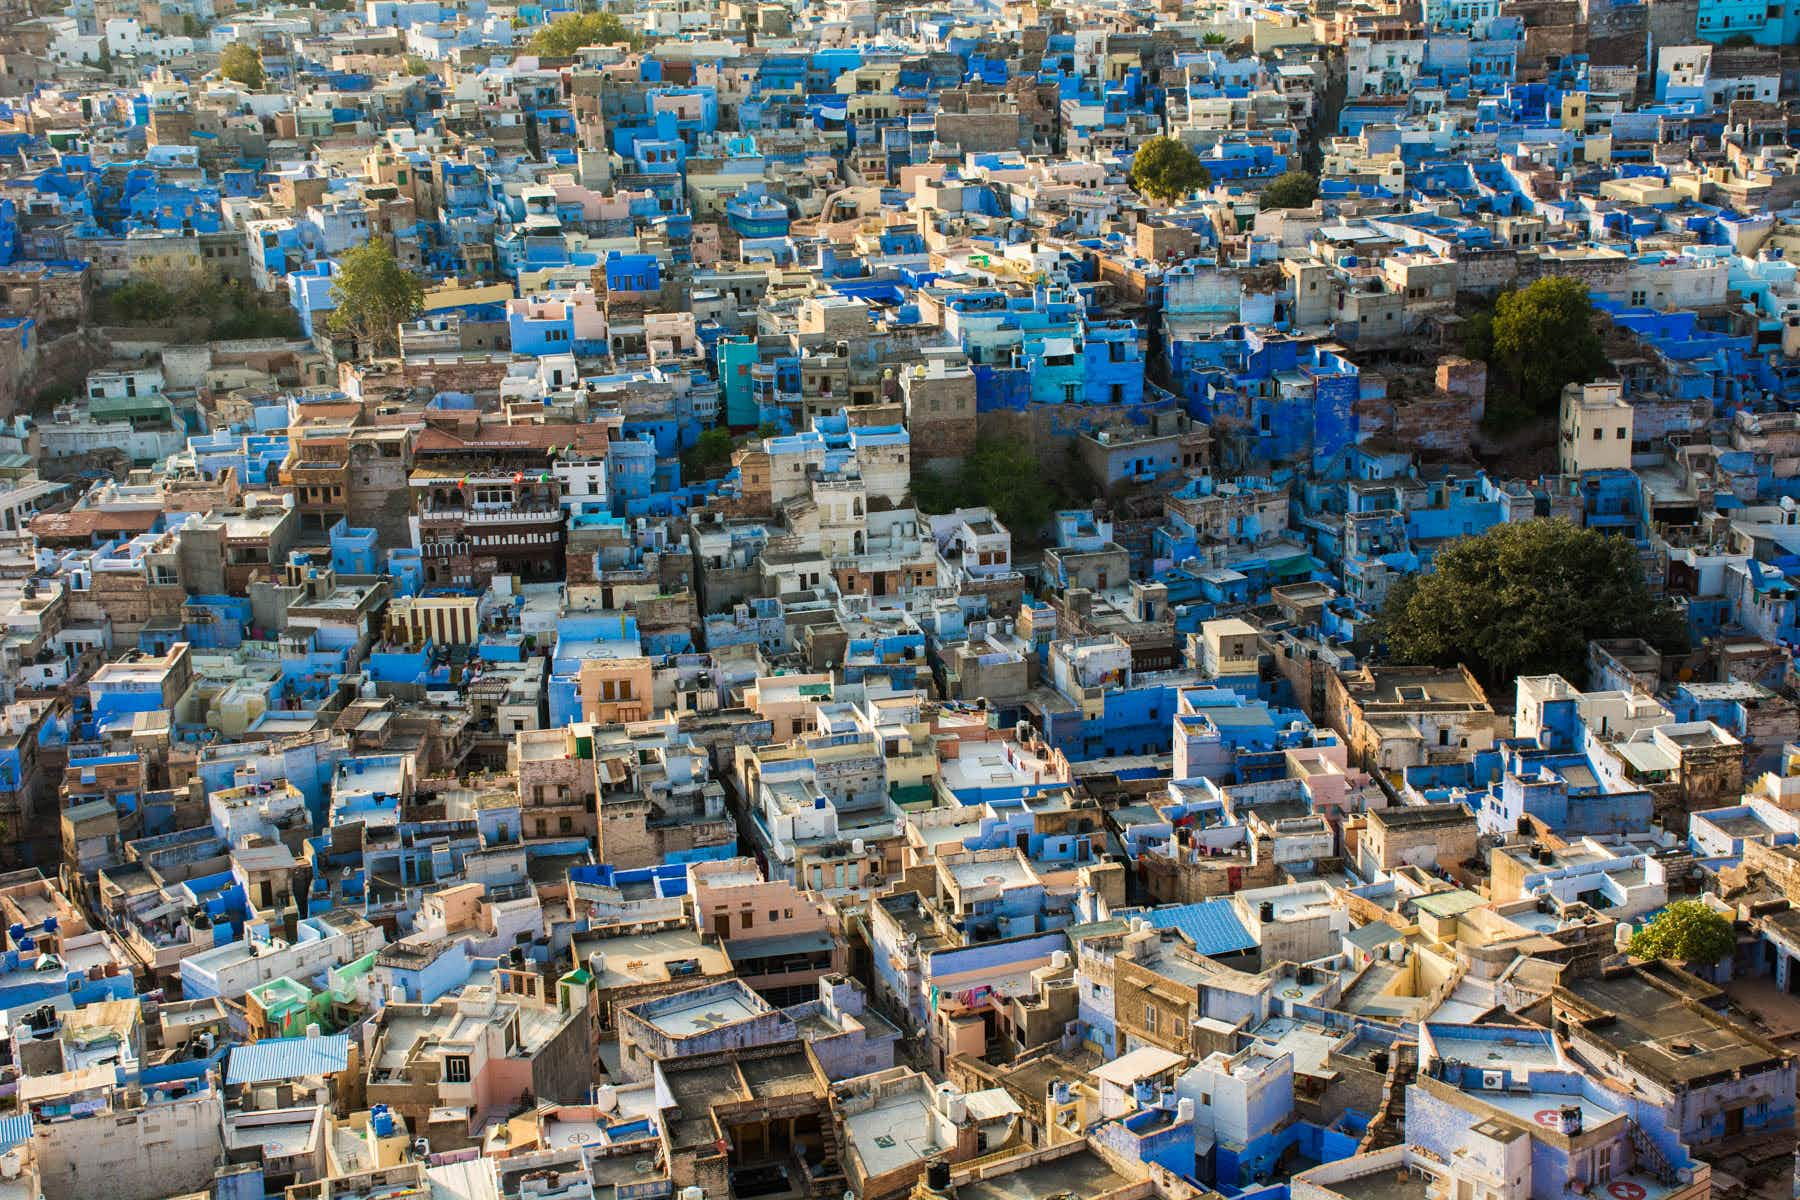 These pictures of the 'Blue City' of Jodhpur will give you serious wanderlust